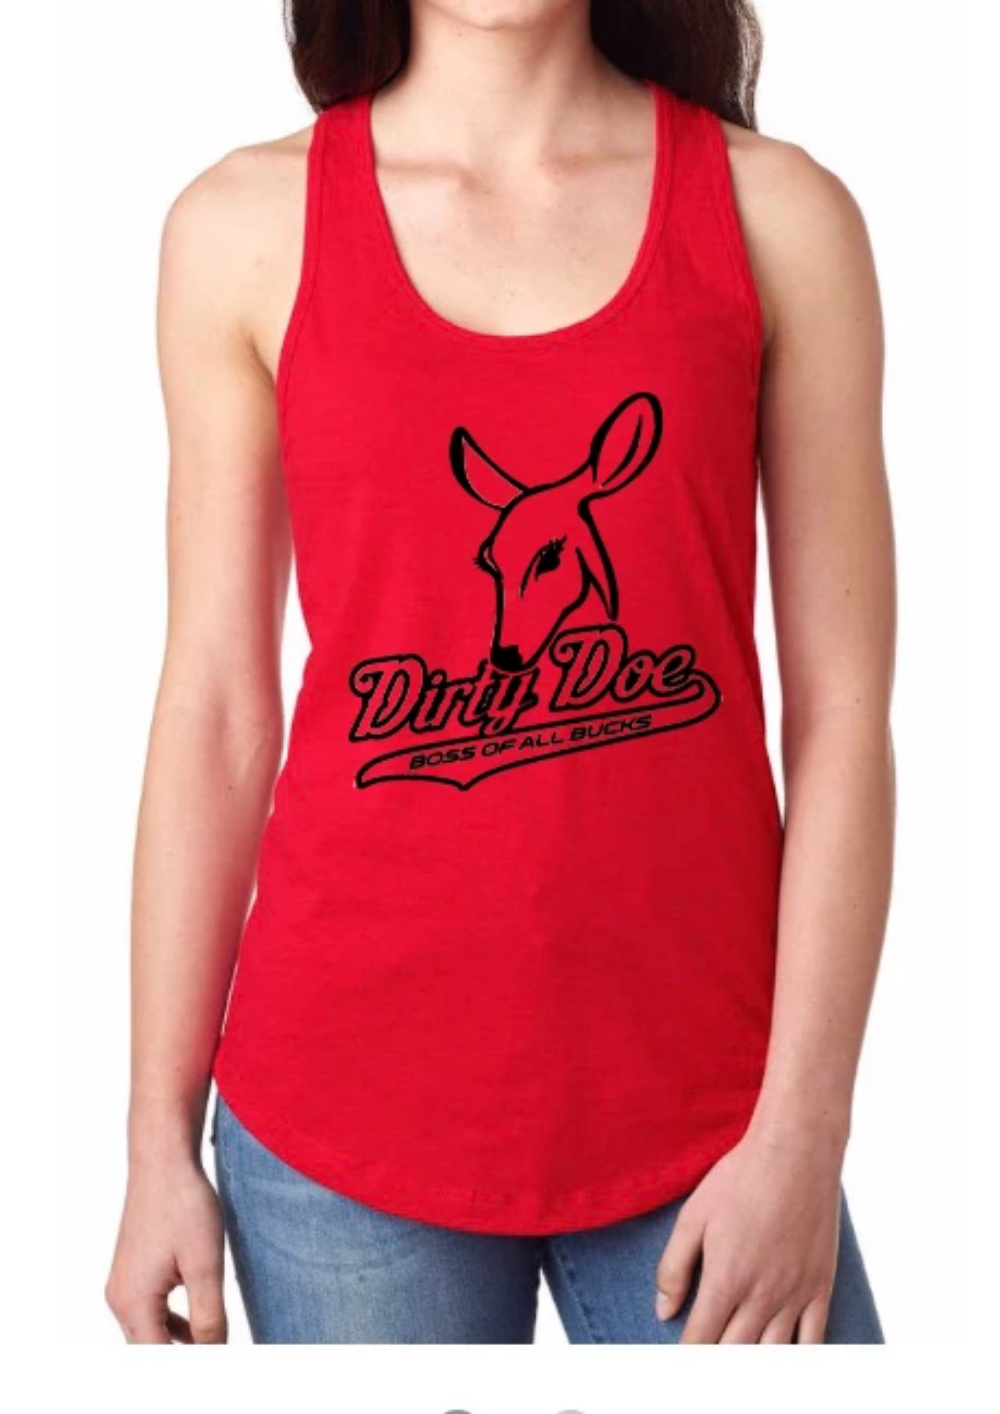 Dirty Doe Racer Back Tank Tops (assorted colors) - Dirty Doe & Buck Wild